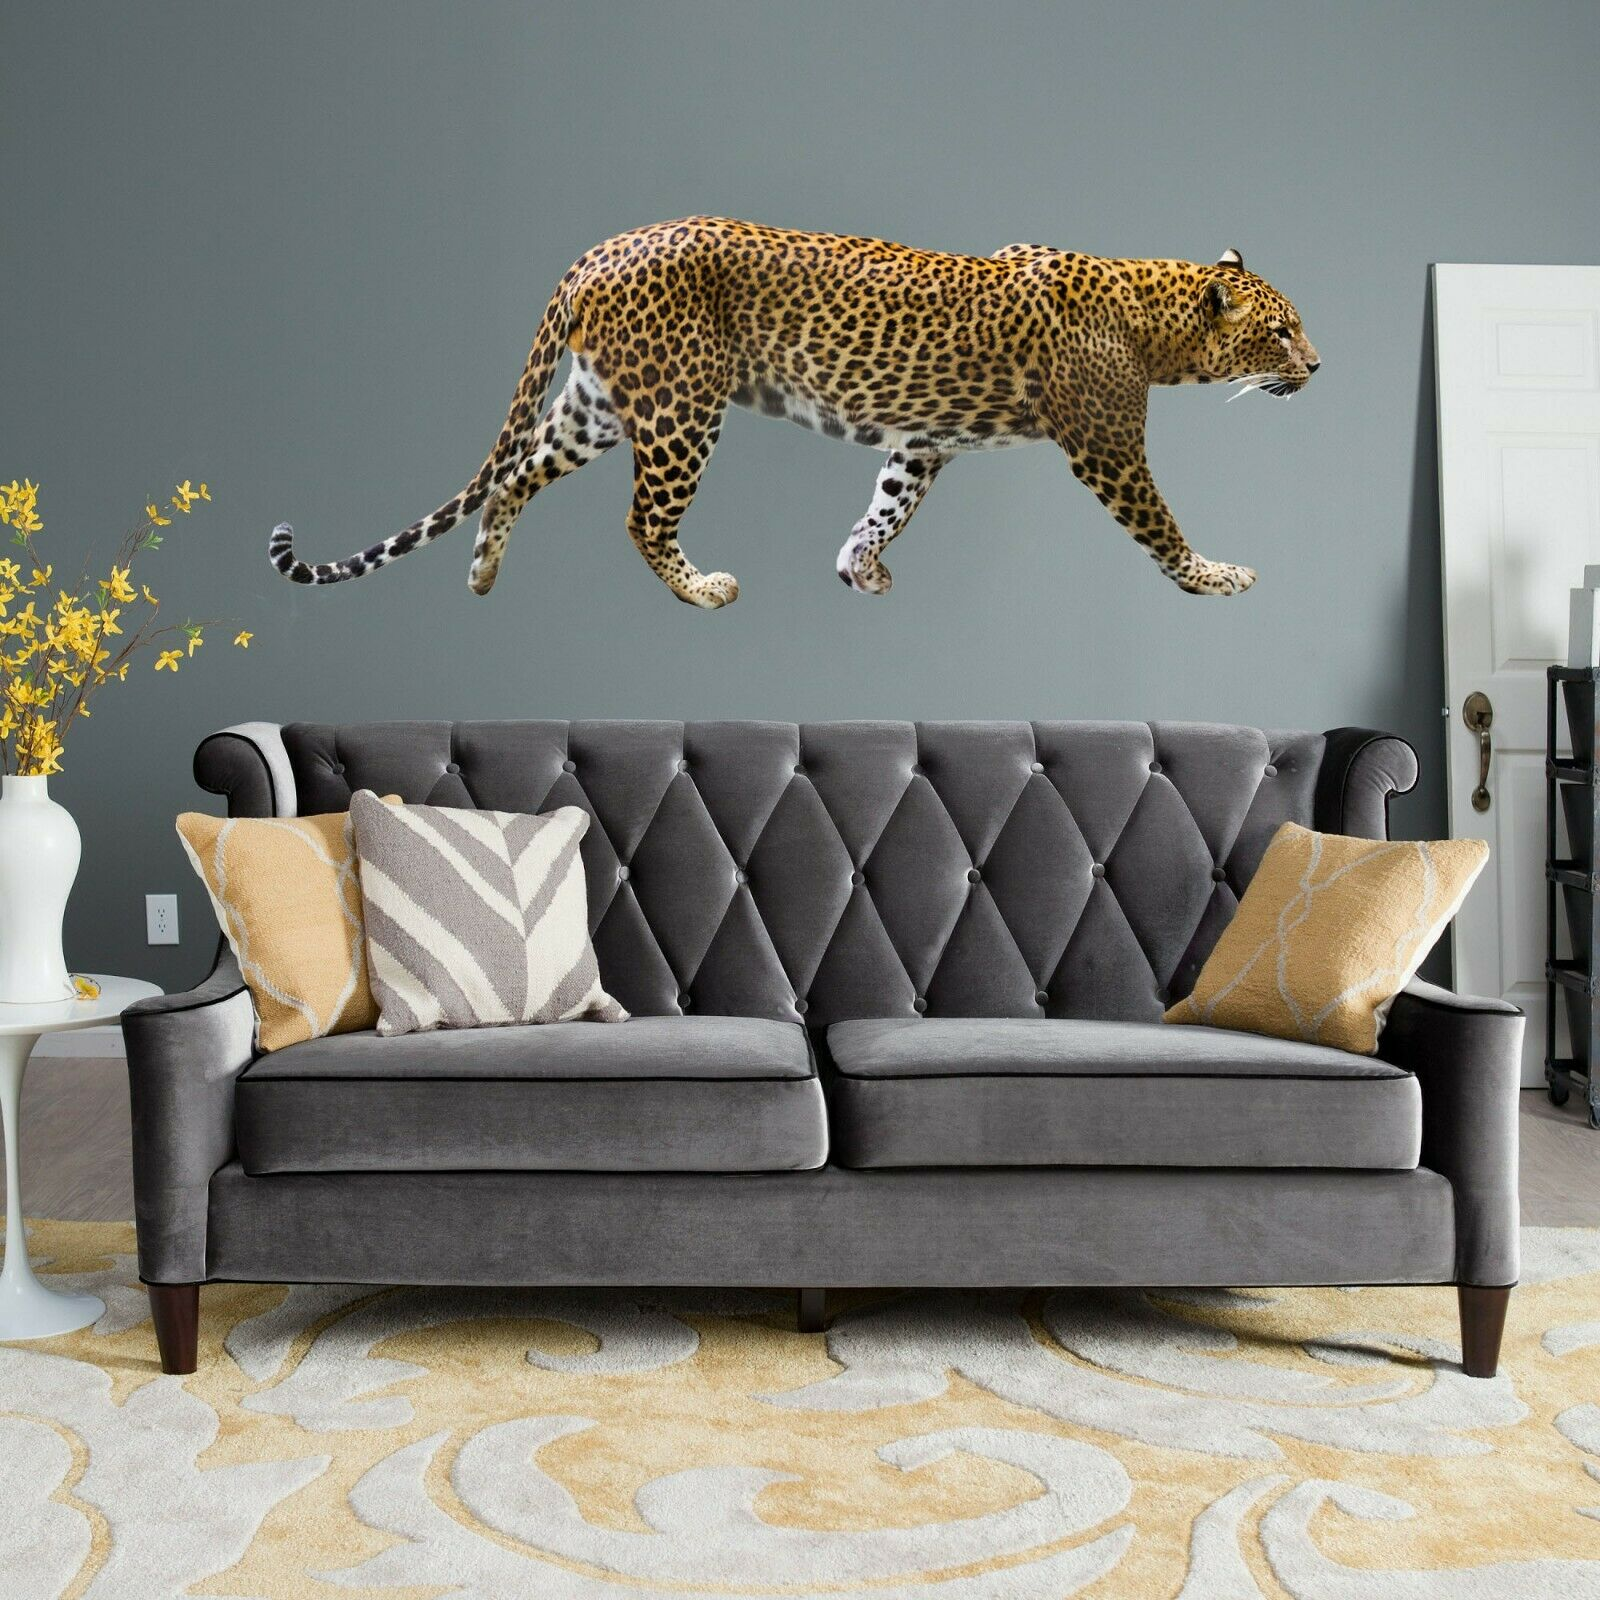 3D Leopard O72 Animal Wallpaper Mural Poster Wall Stickers Decal Angelia